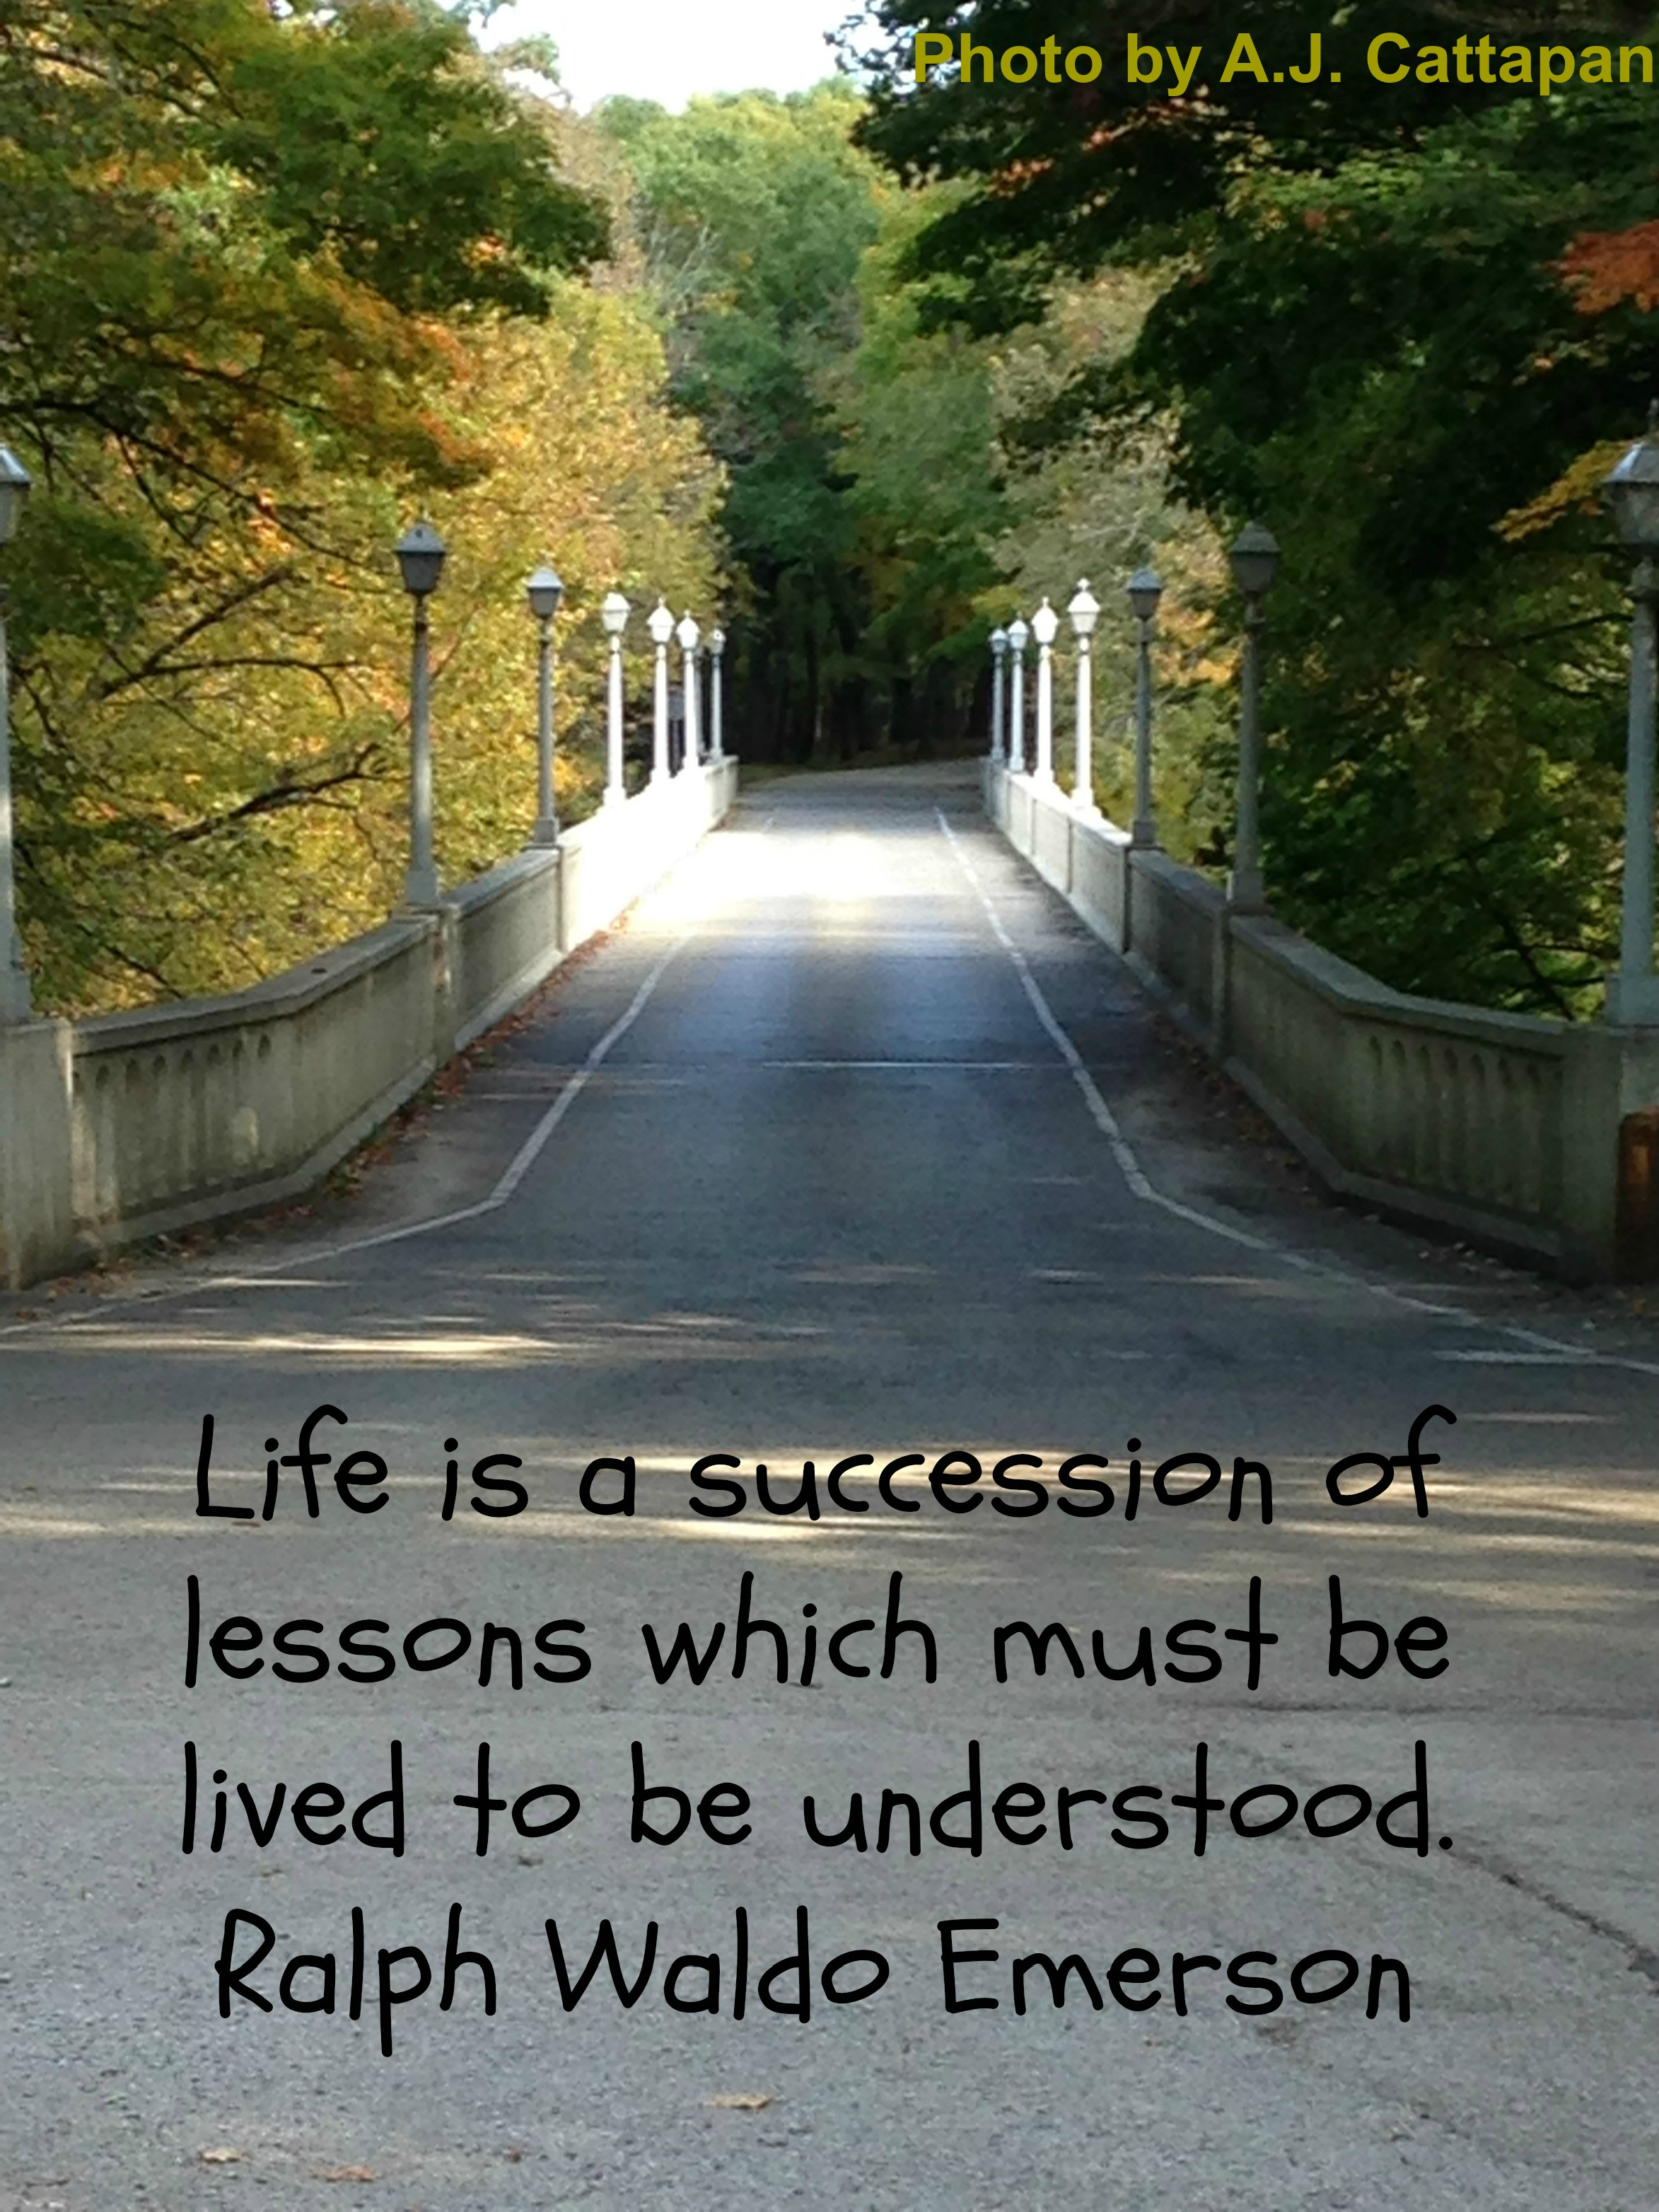 Life is a succession2